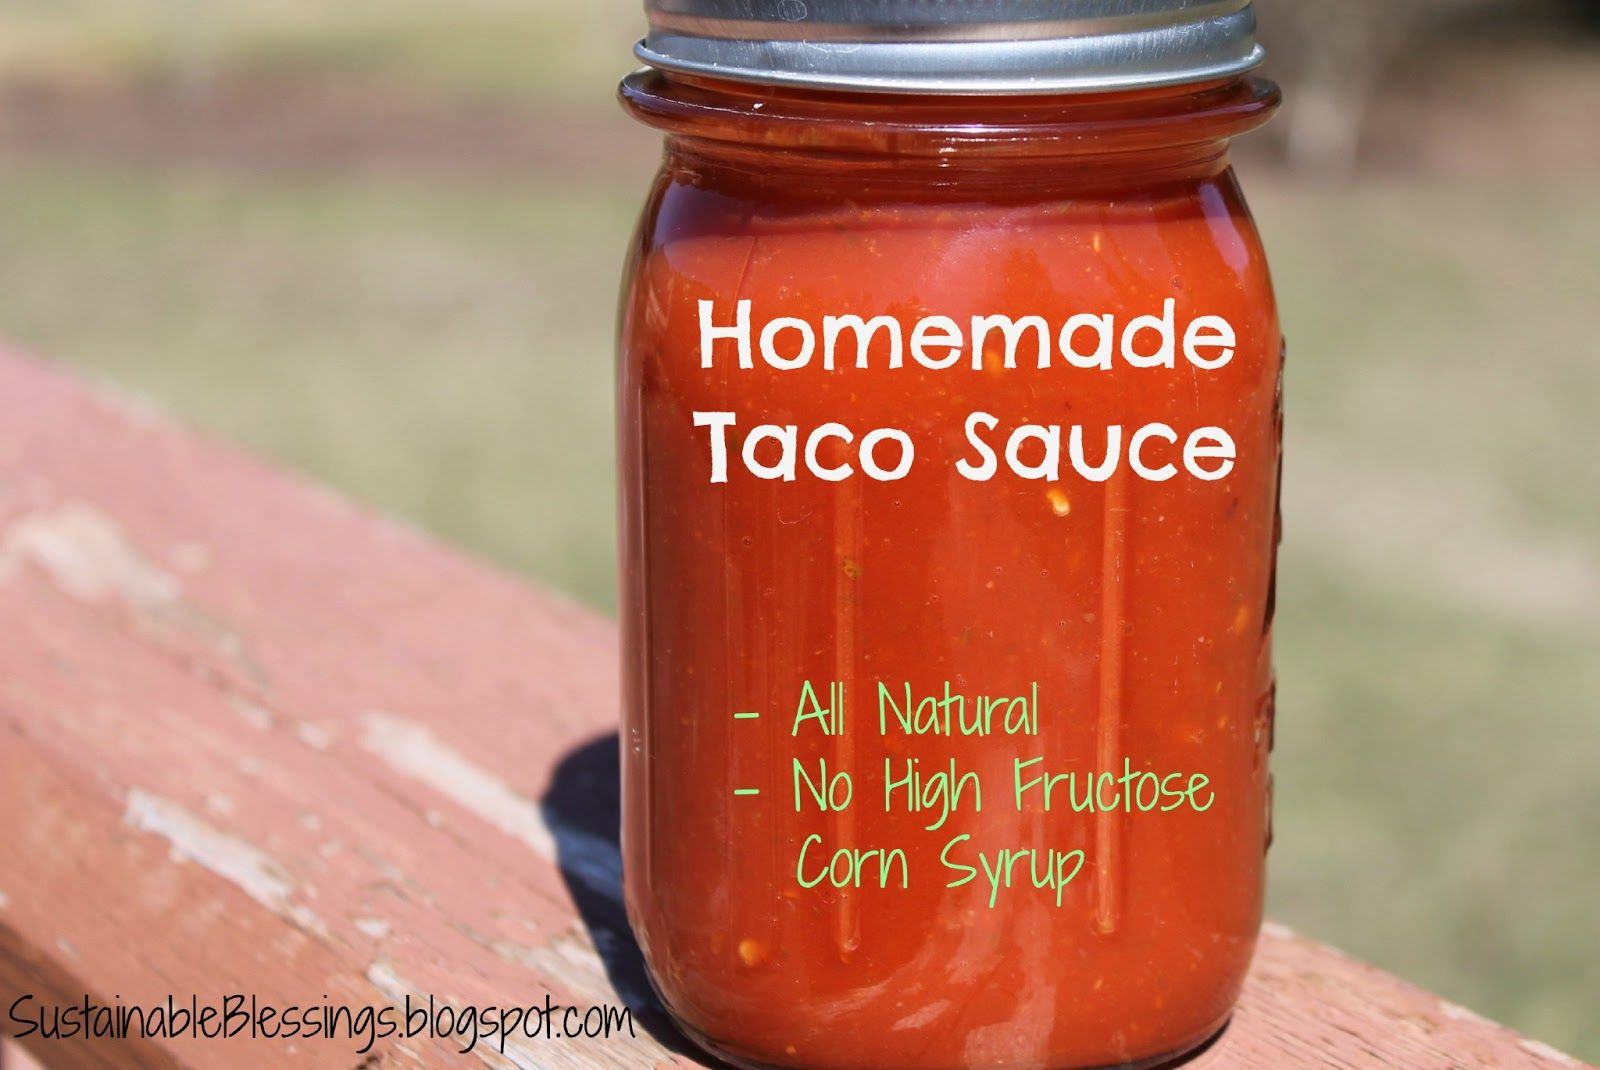 Sustainable Blessings: Taco Sauce